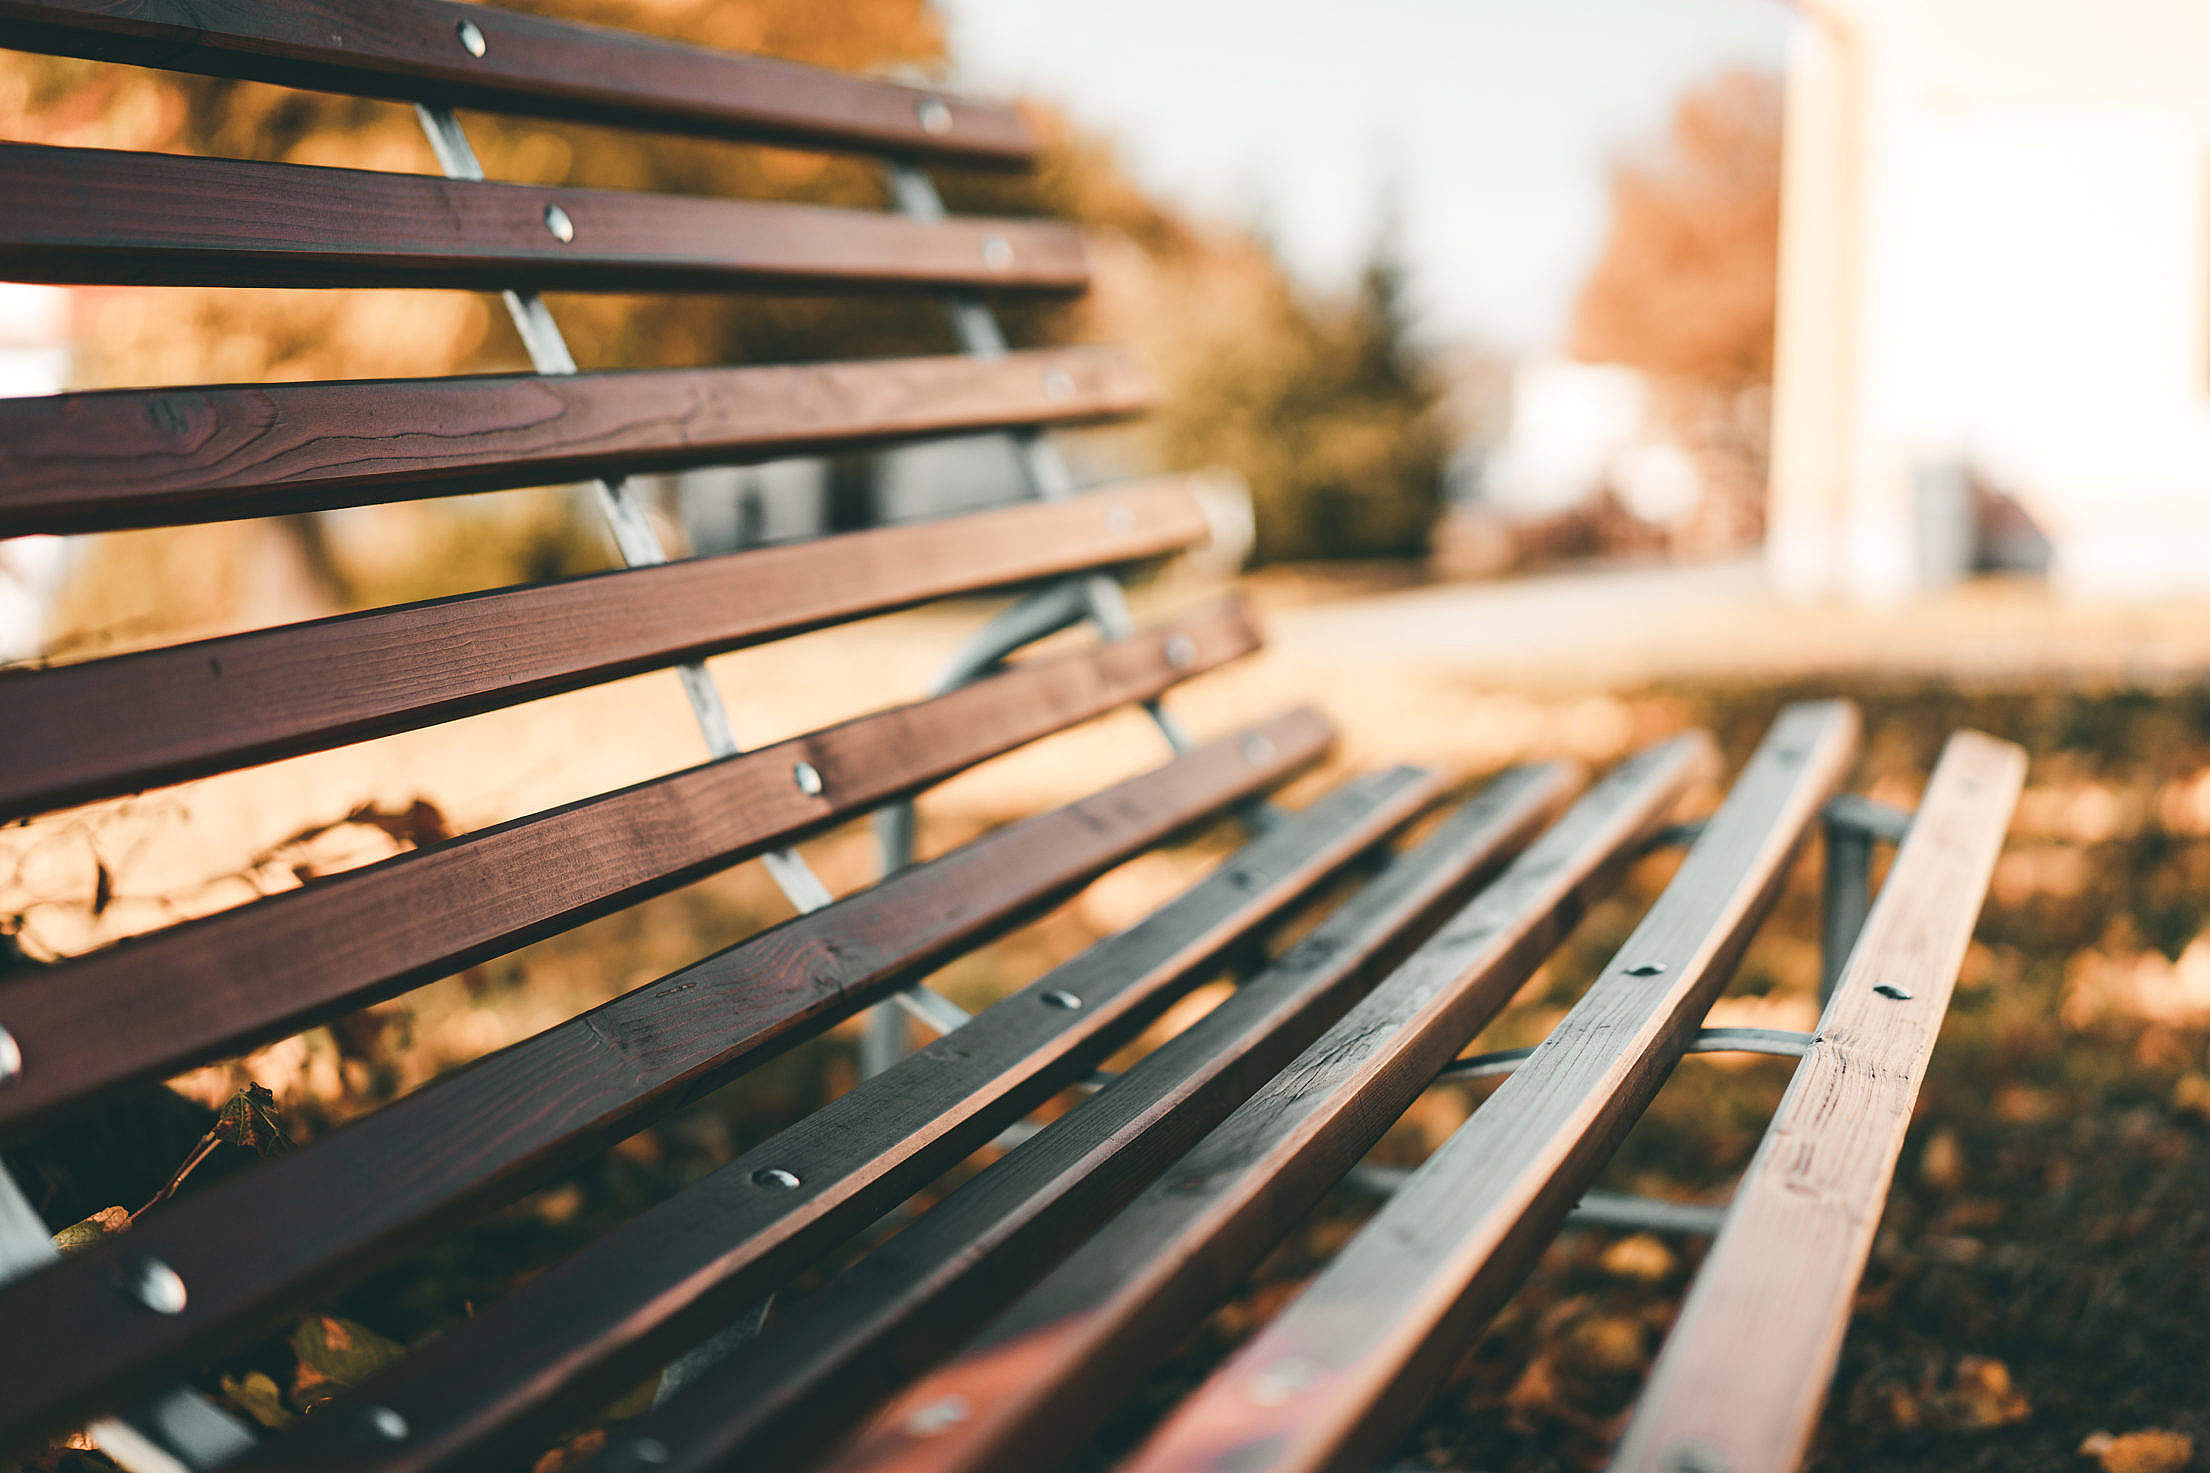 Bench in The Park Close Up Free Stock Photo